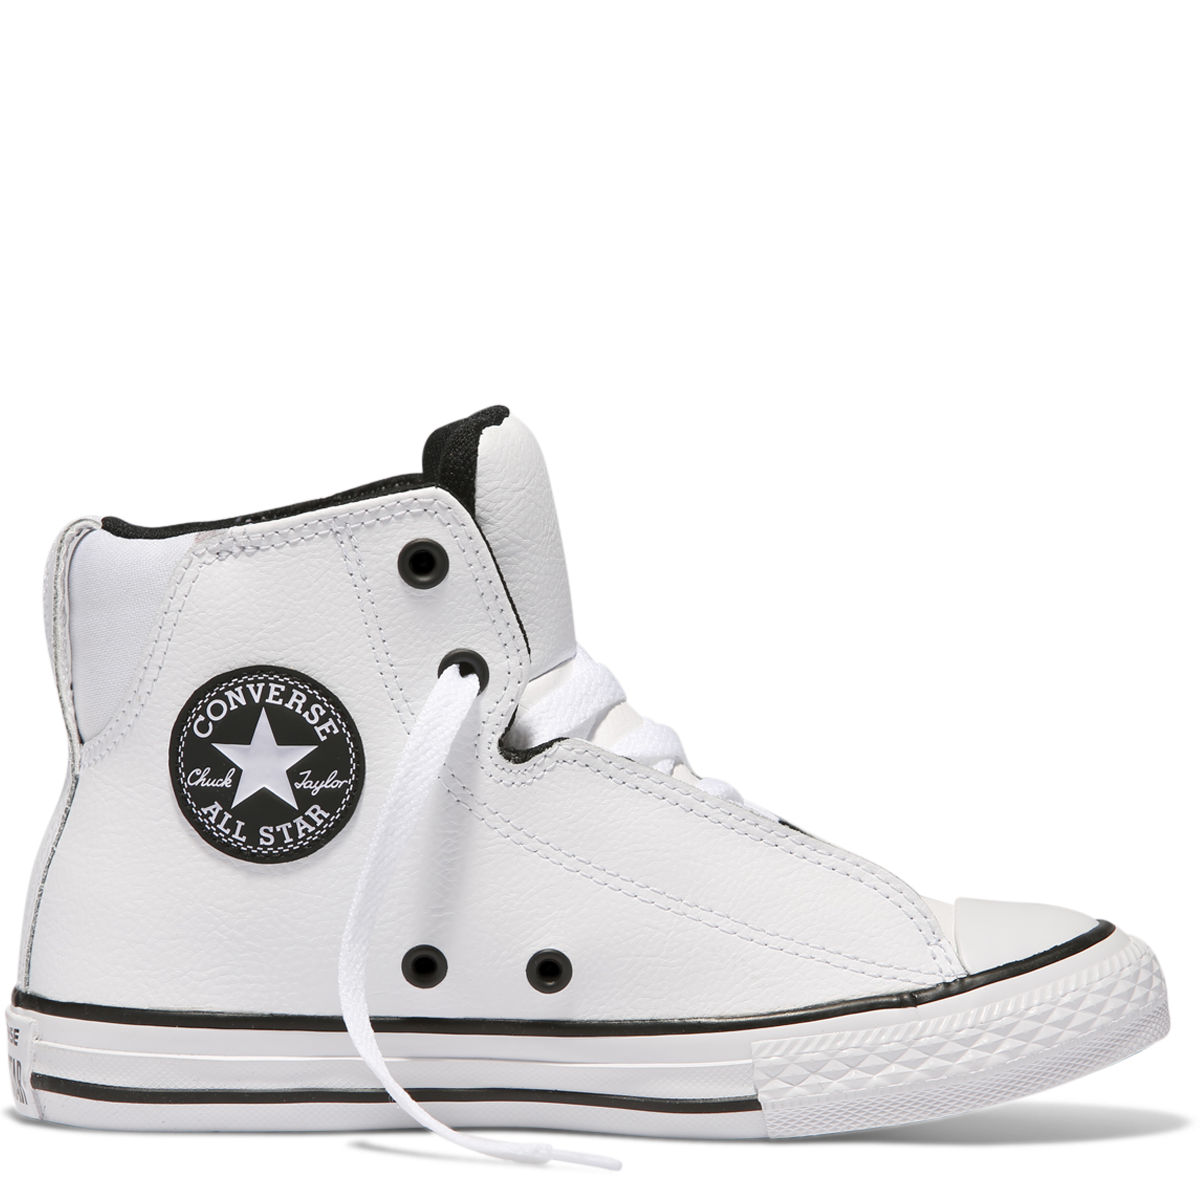 582ddcbc8fa983 Chuck Taylor Youth All Star Legit Leather High Top White 655997C Famous  Rock Shop 517 Hunter ...